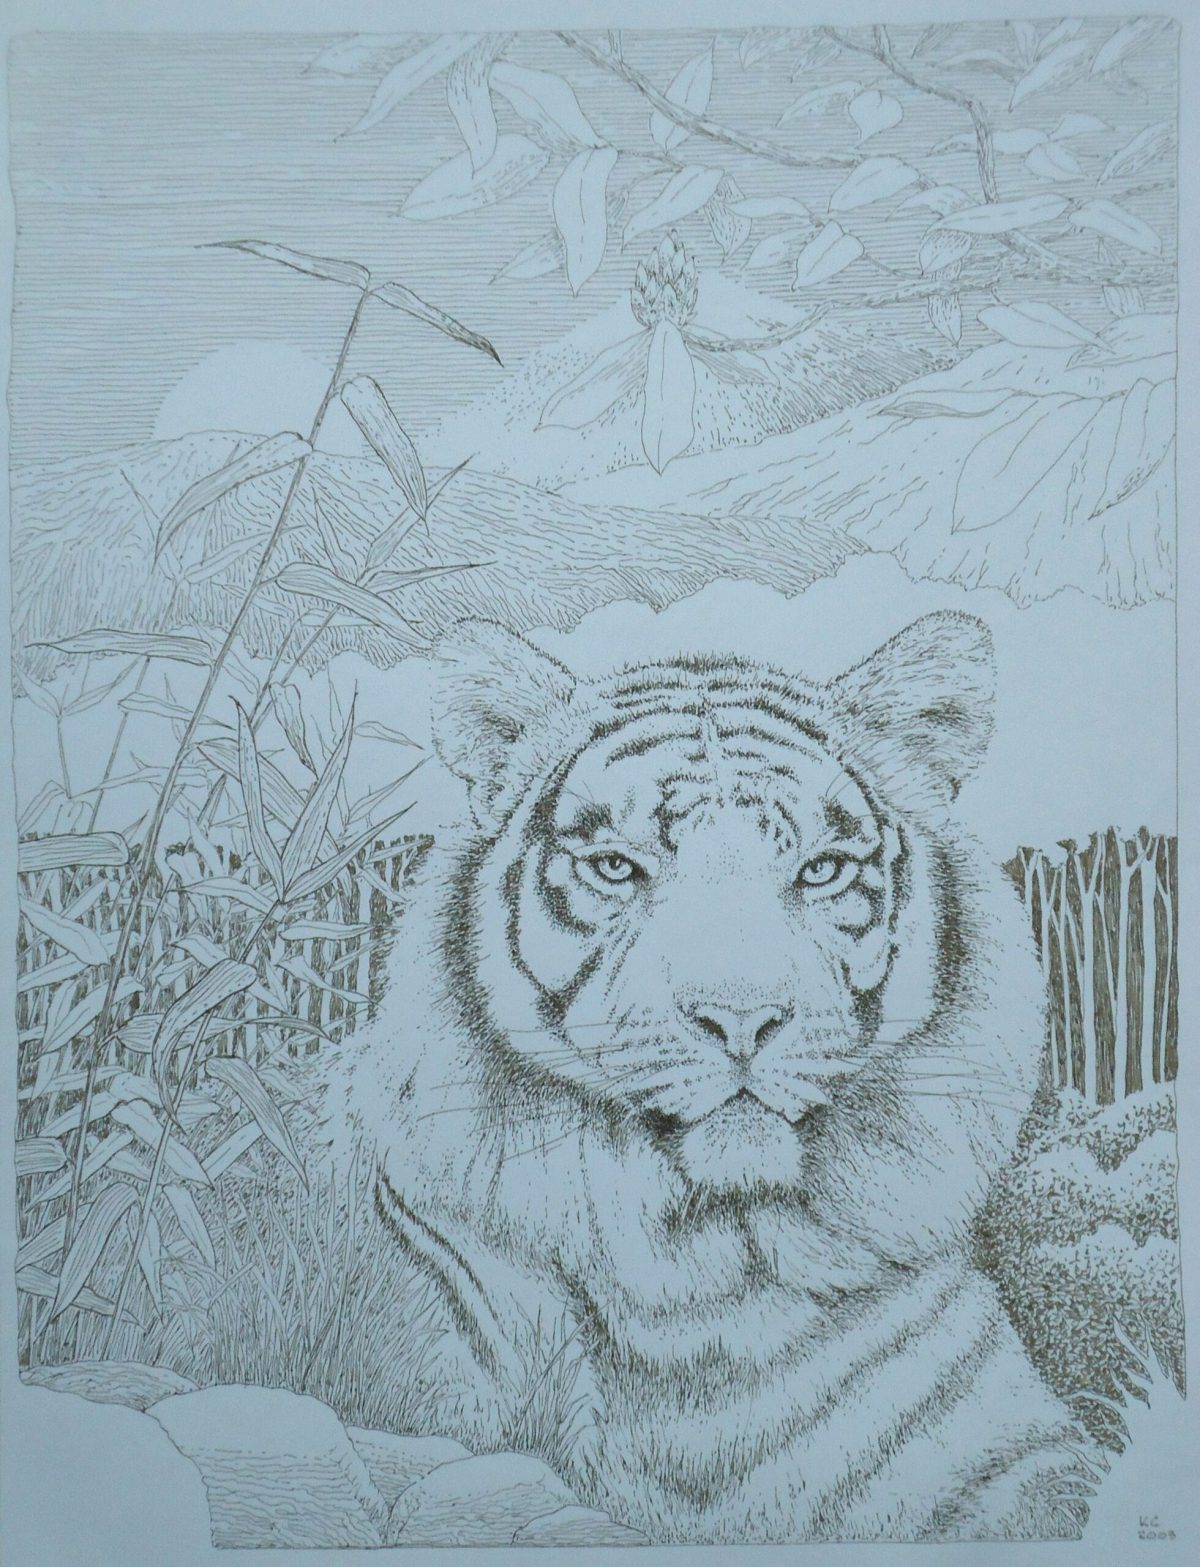 A pen and ink drawing of a tiger in a scenic setting by Keith Cains.